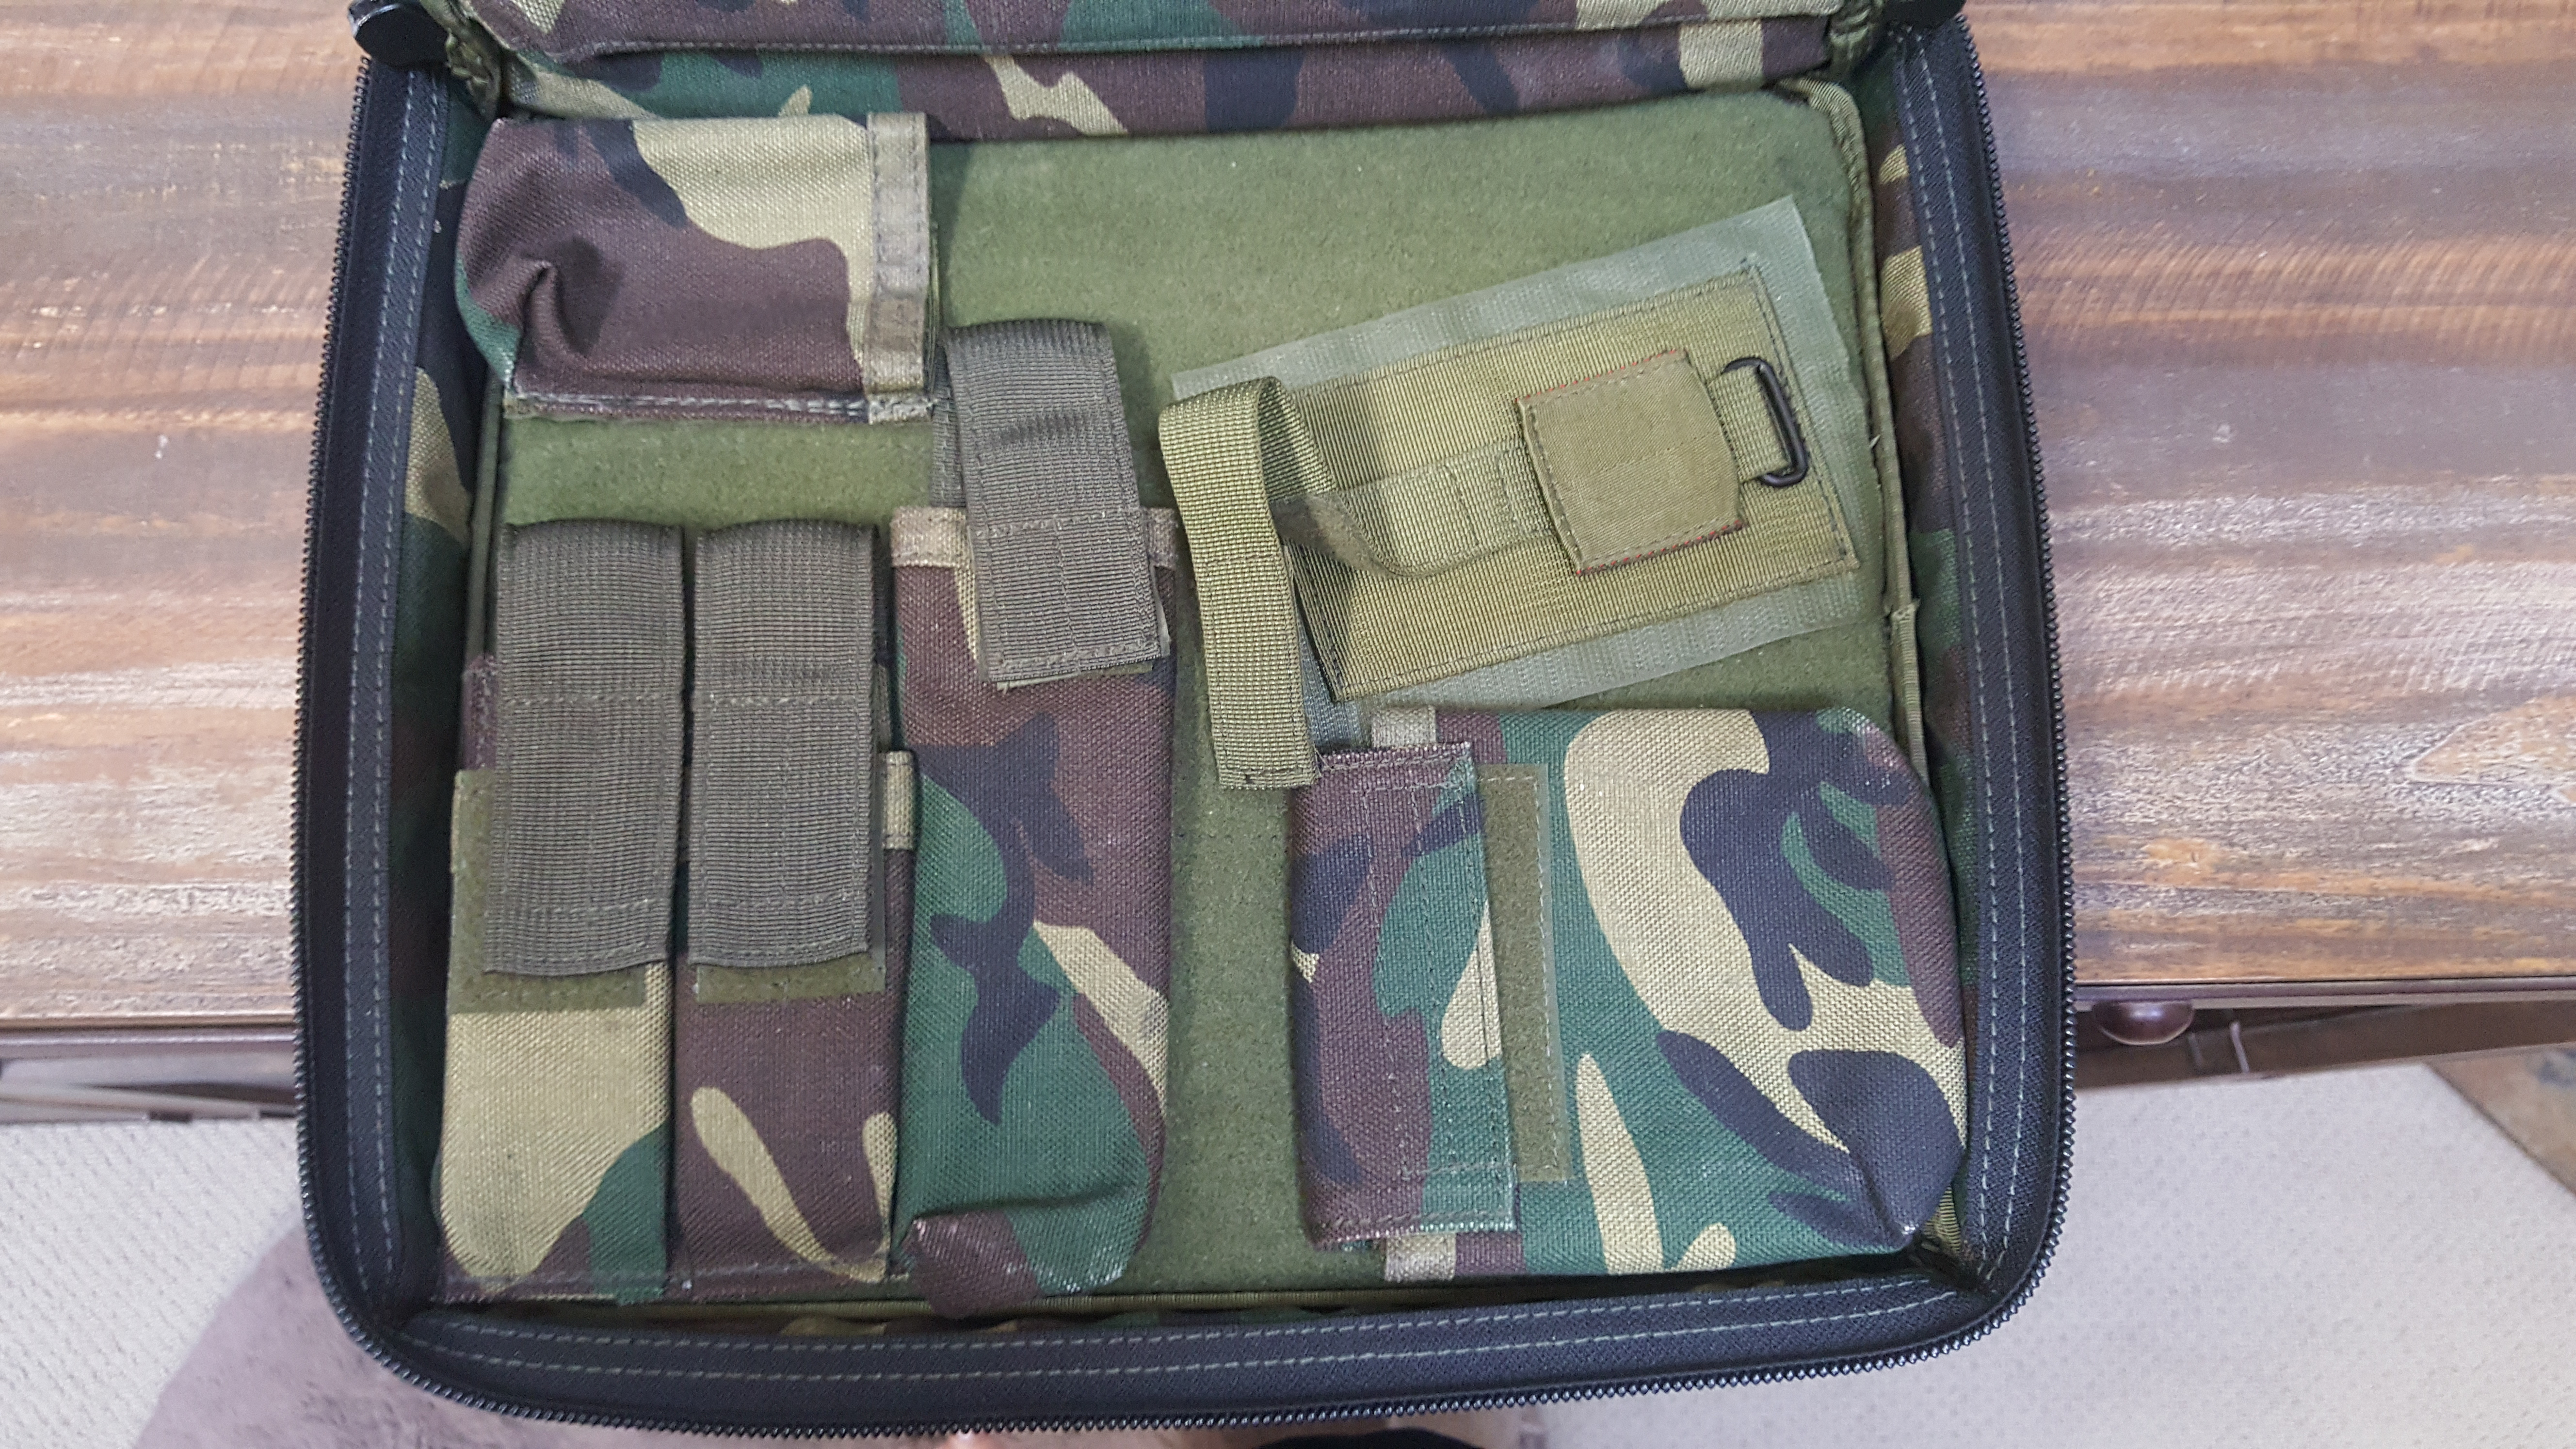 WTS: Eagle Case,  HK45 mags,  USP9 and 40 mags-20200703_084208.jpg